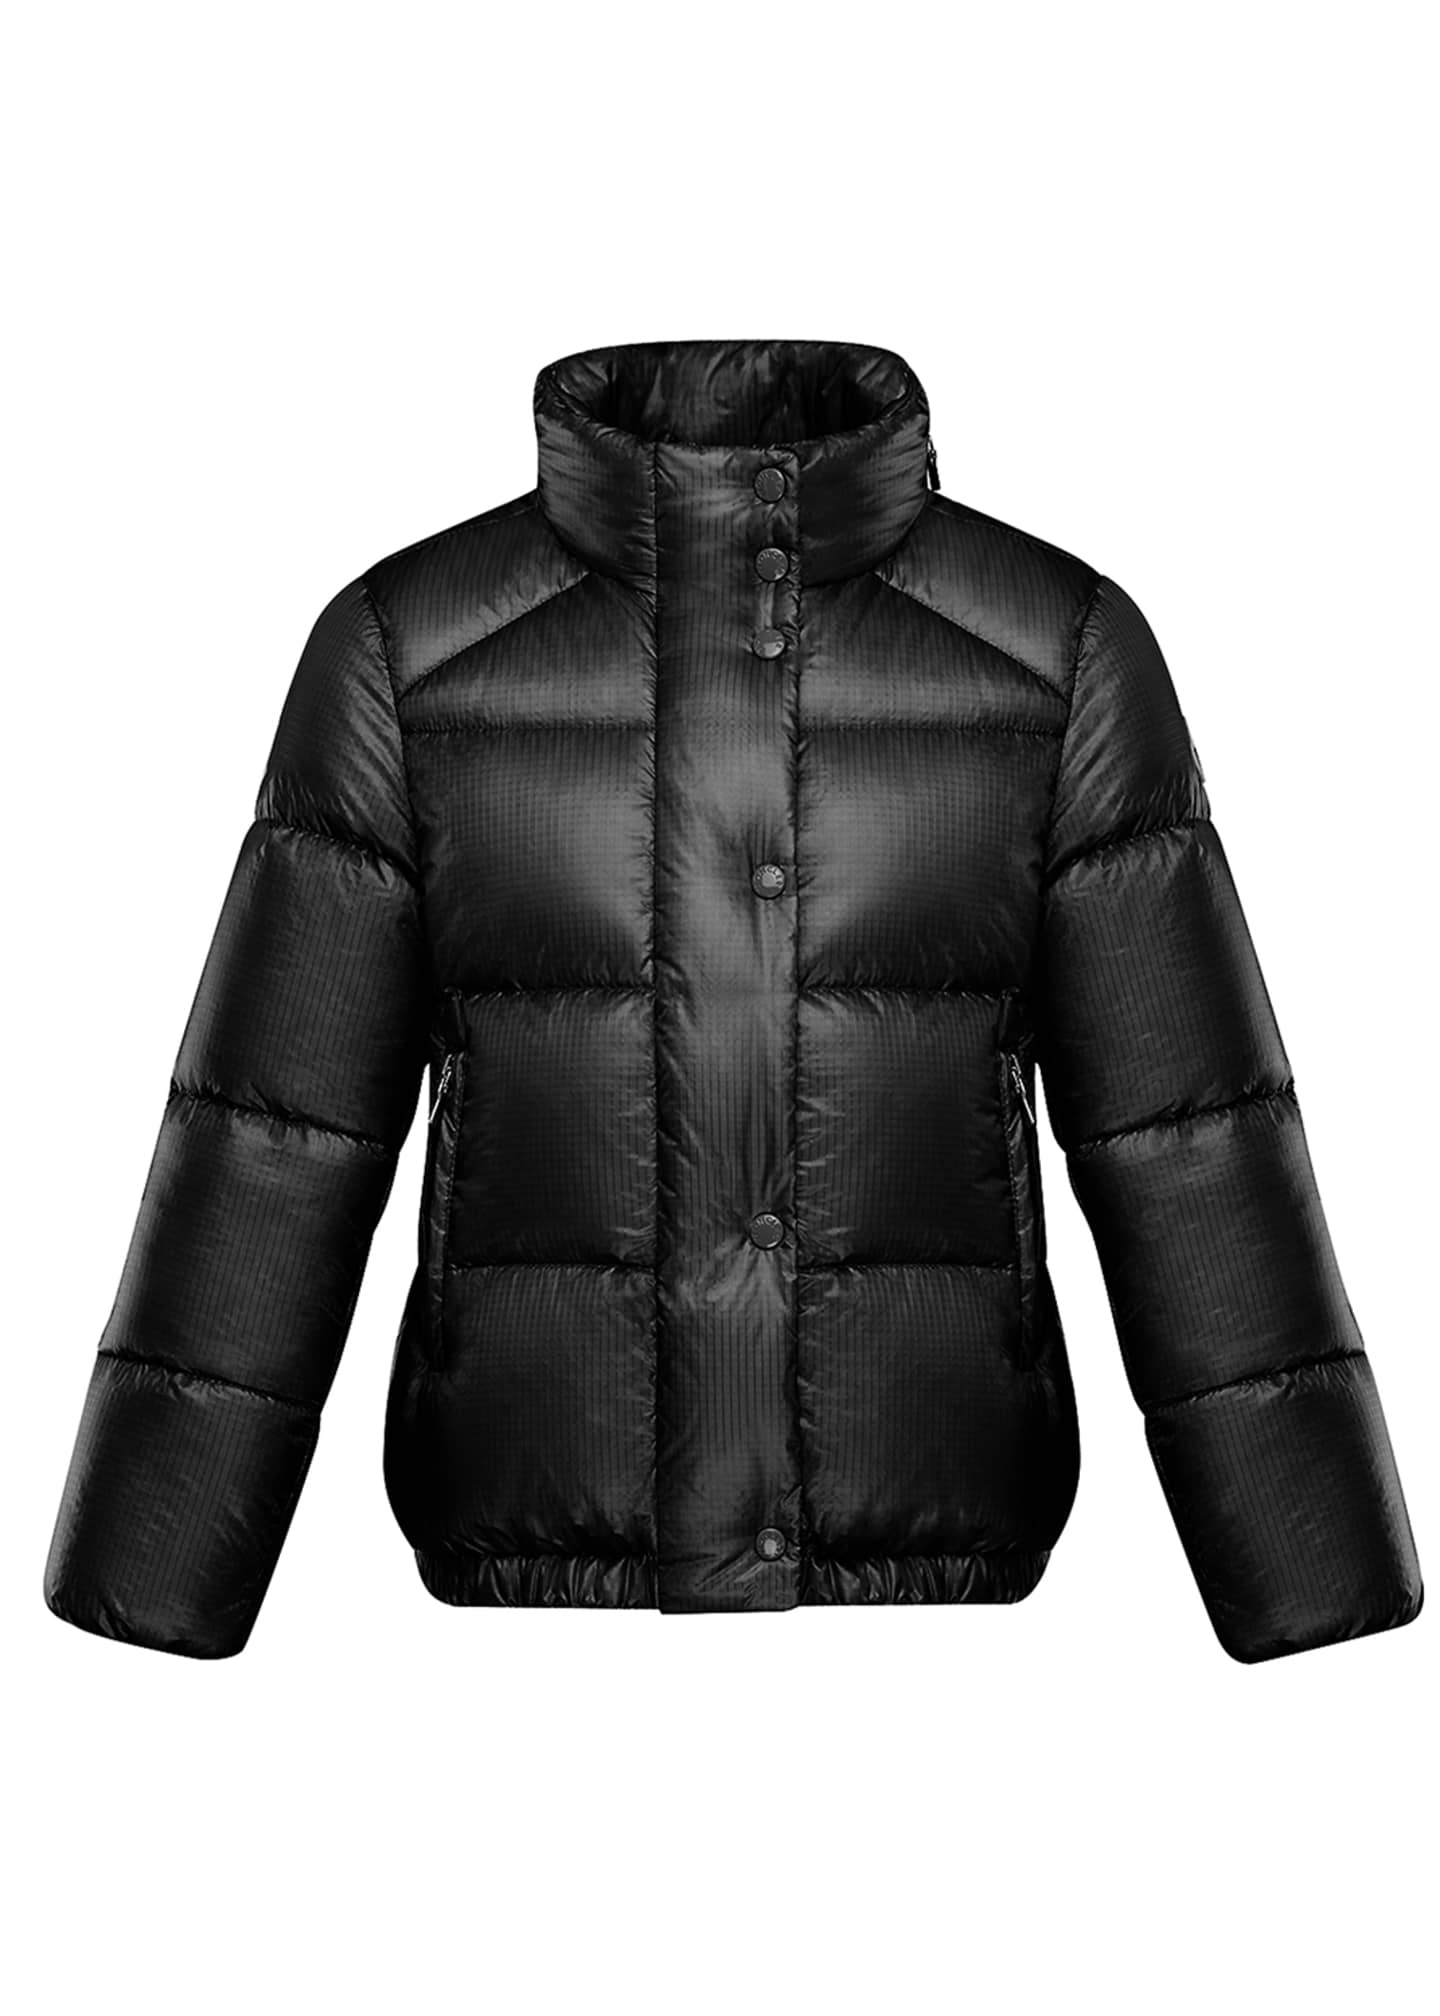 Image 1 of 2: Hortensia Nylon Ribstop Jacket Sizes 8-14